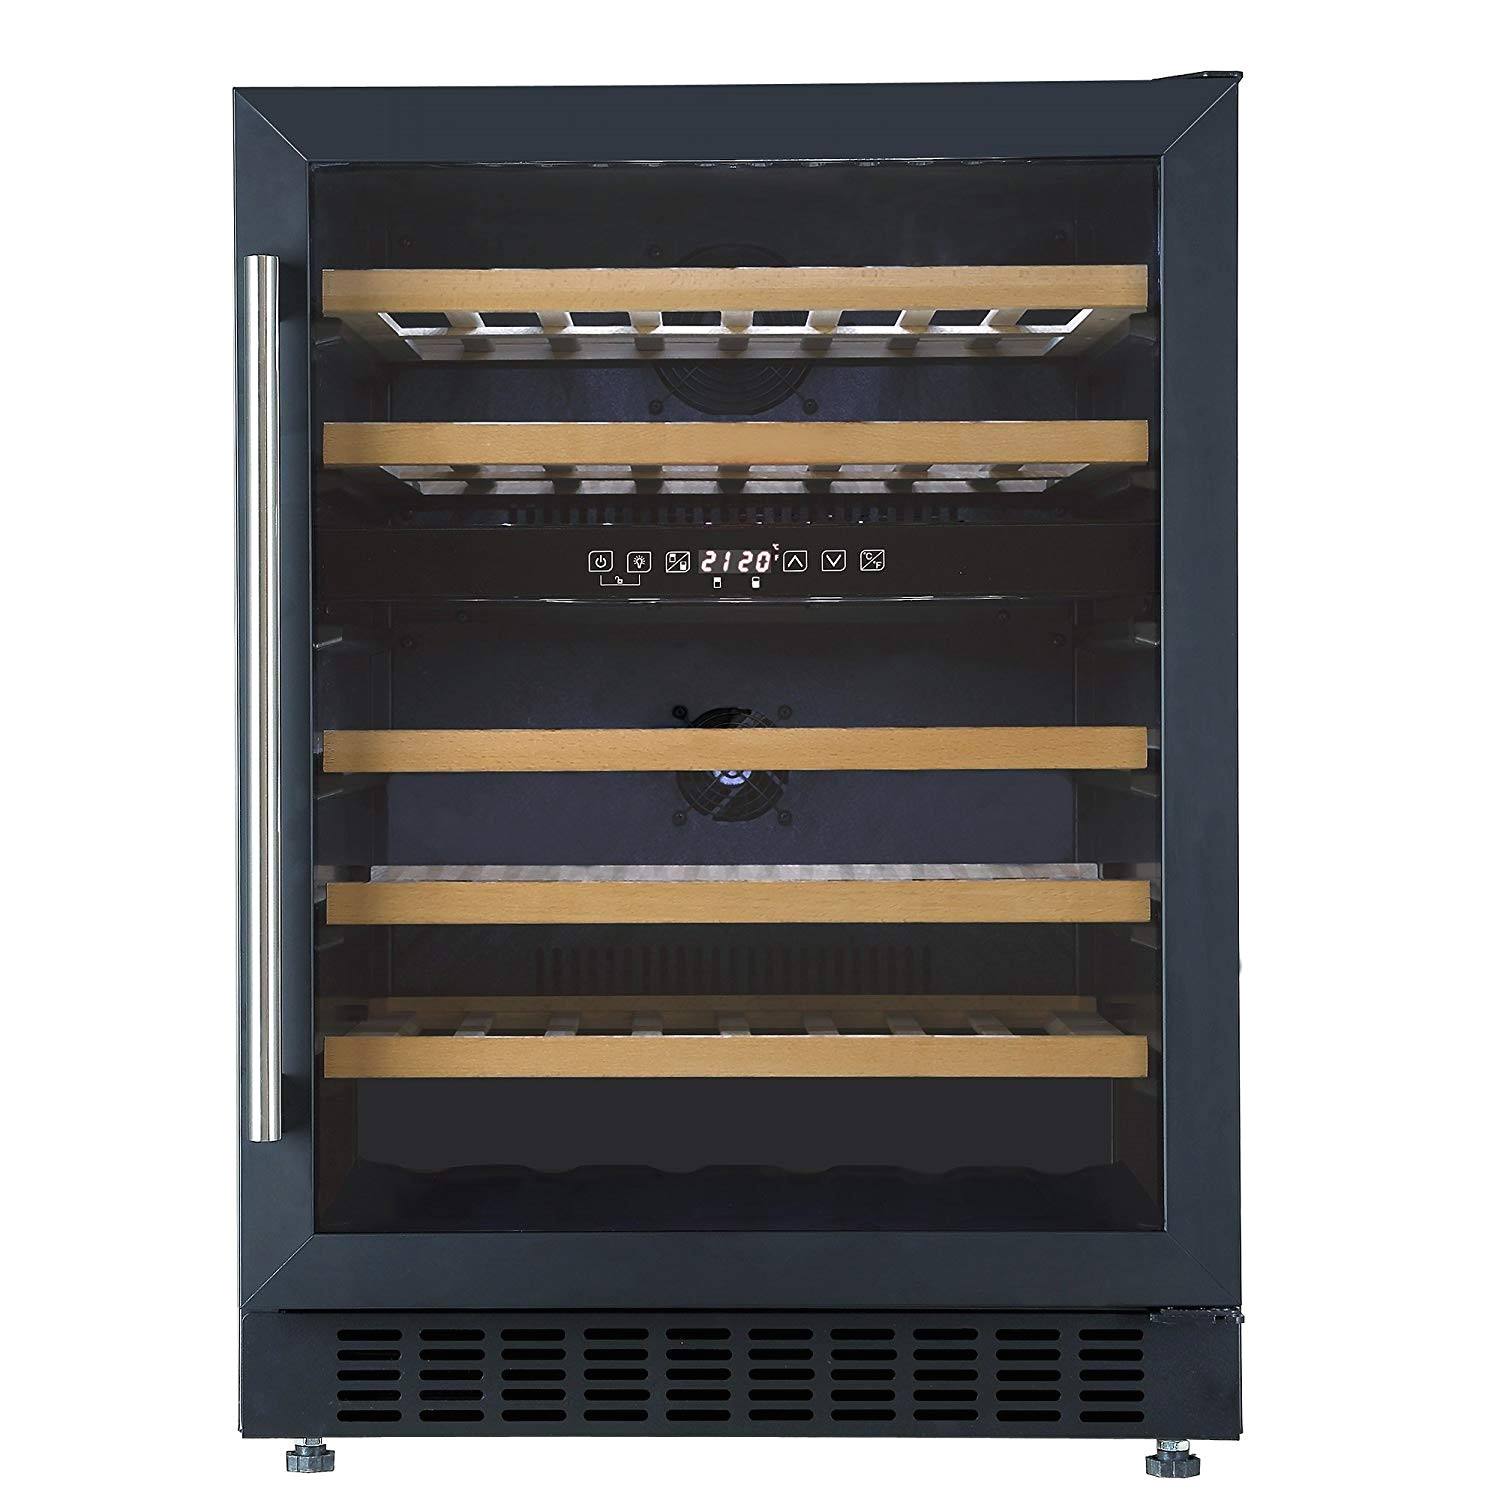 cookology cwc605bk undercounter 46 bottle 60cm two zone wine cooler in black 5 20c amazon co uk large appliances